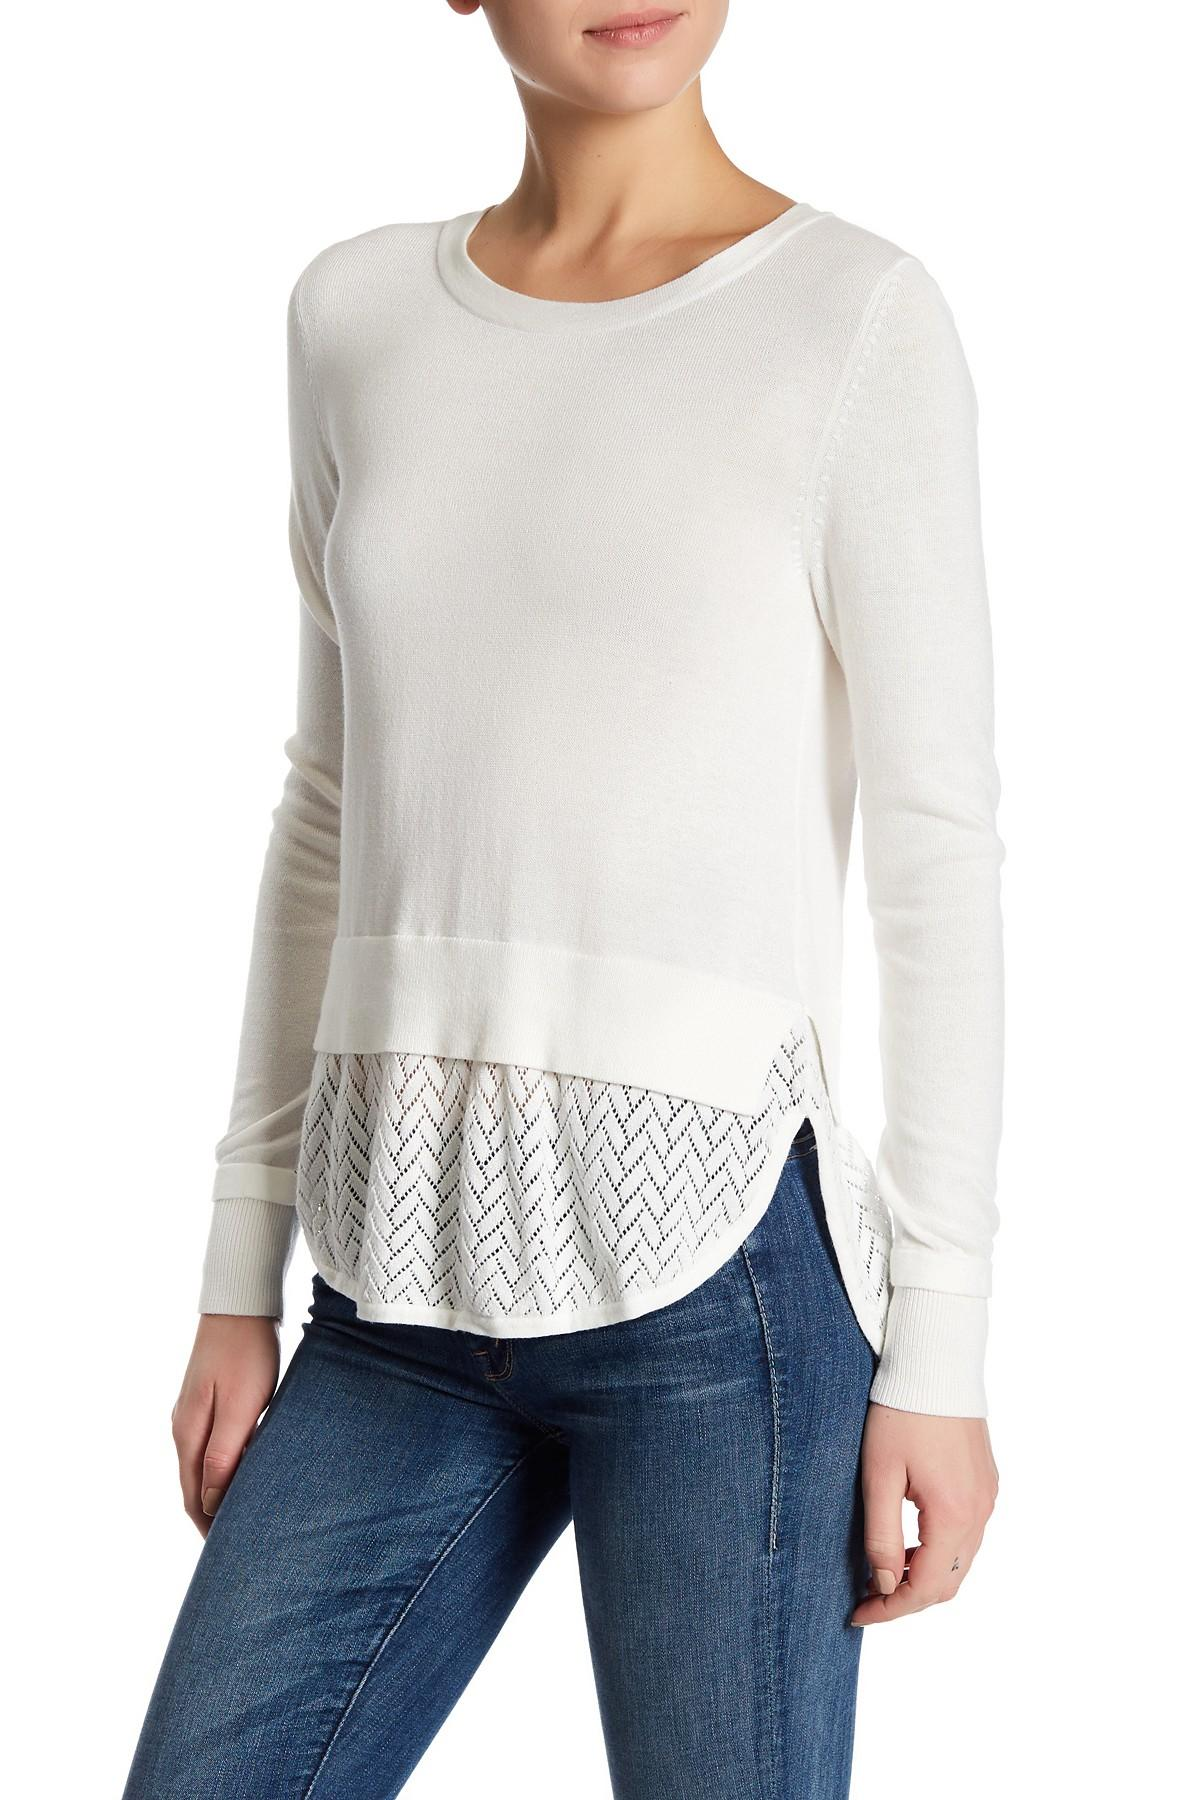 Lyst french connection long sleeve knit shirt in white for French cut shirt sleeve